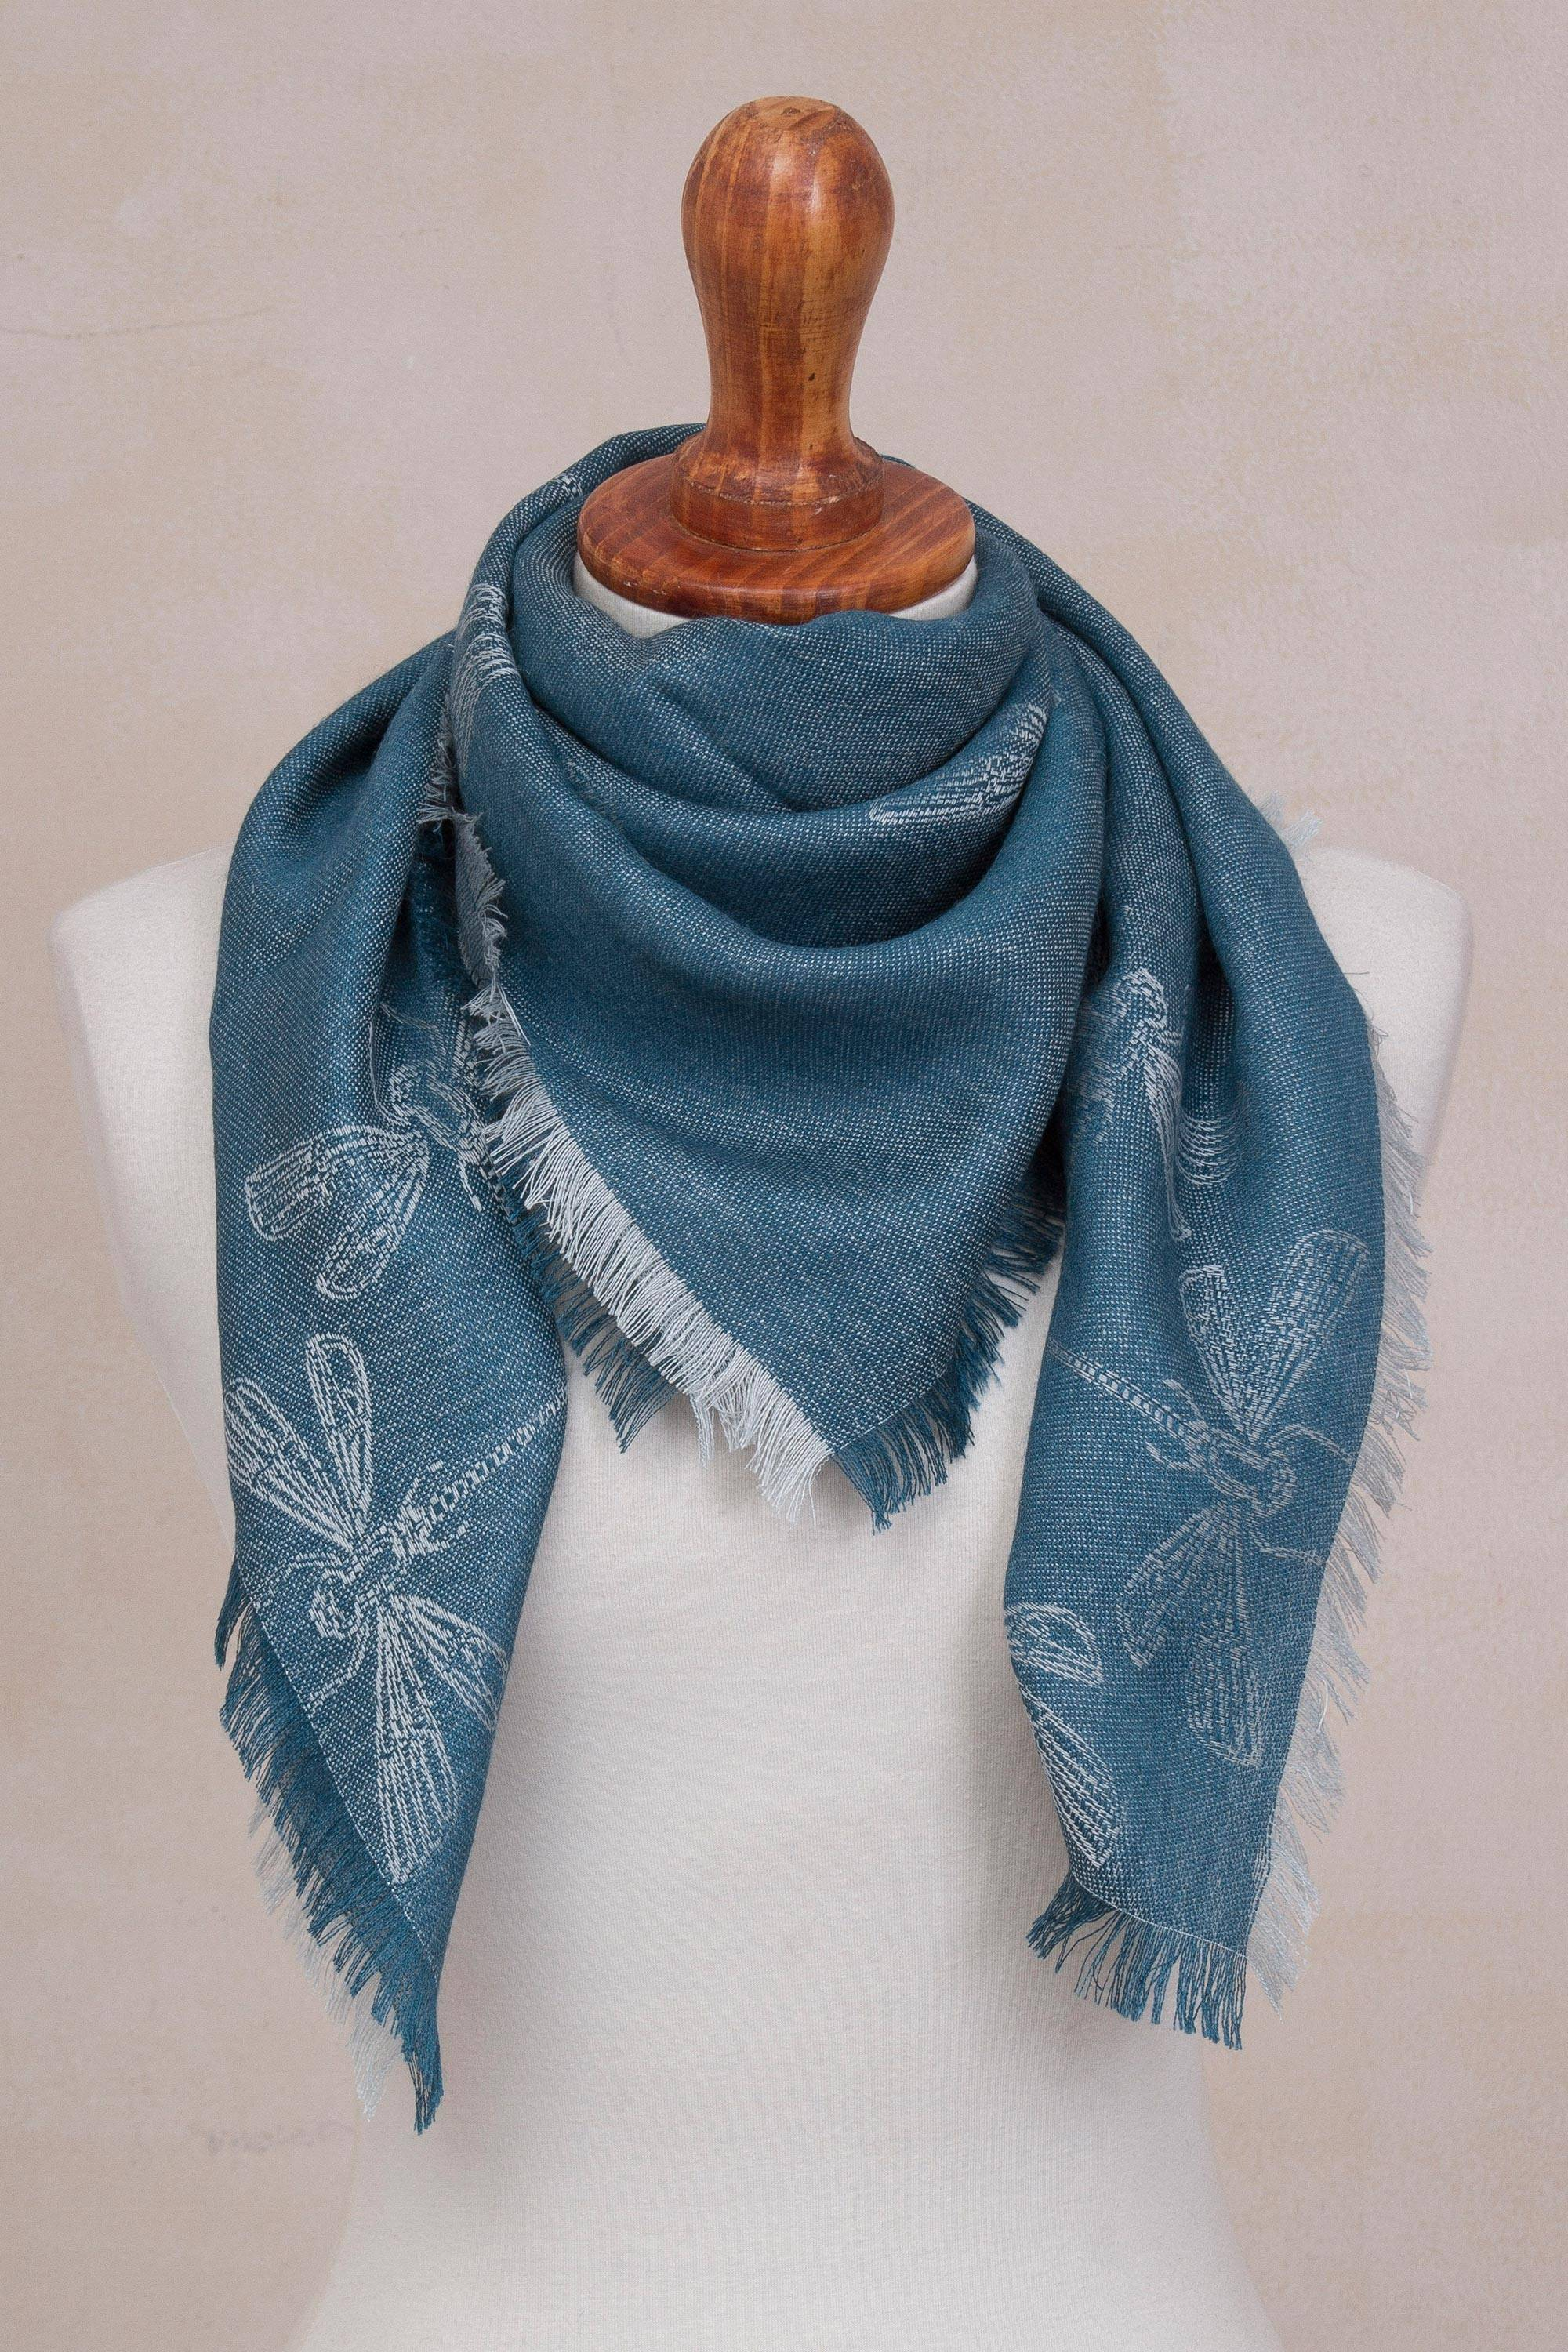 Baby Alpaca and Silk Blend Teal Dragonfly Reversible Scarf, 'Dragonfly in  Teal'